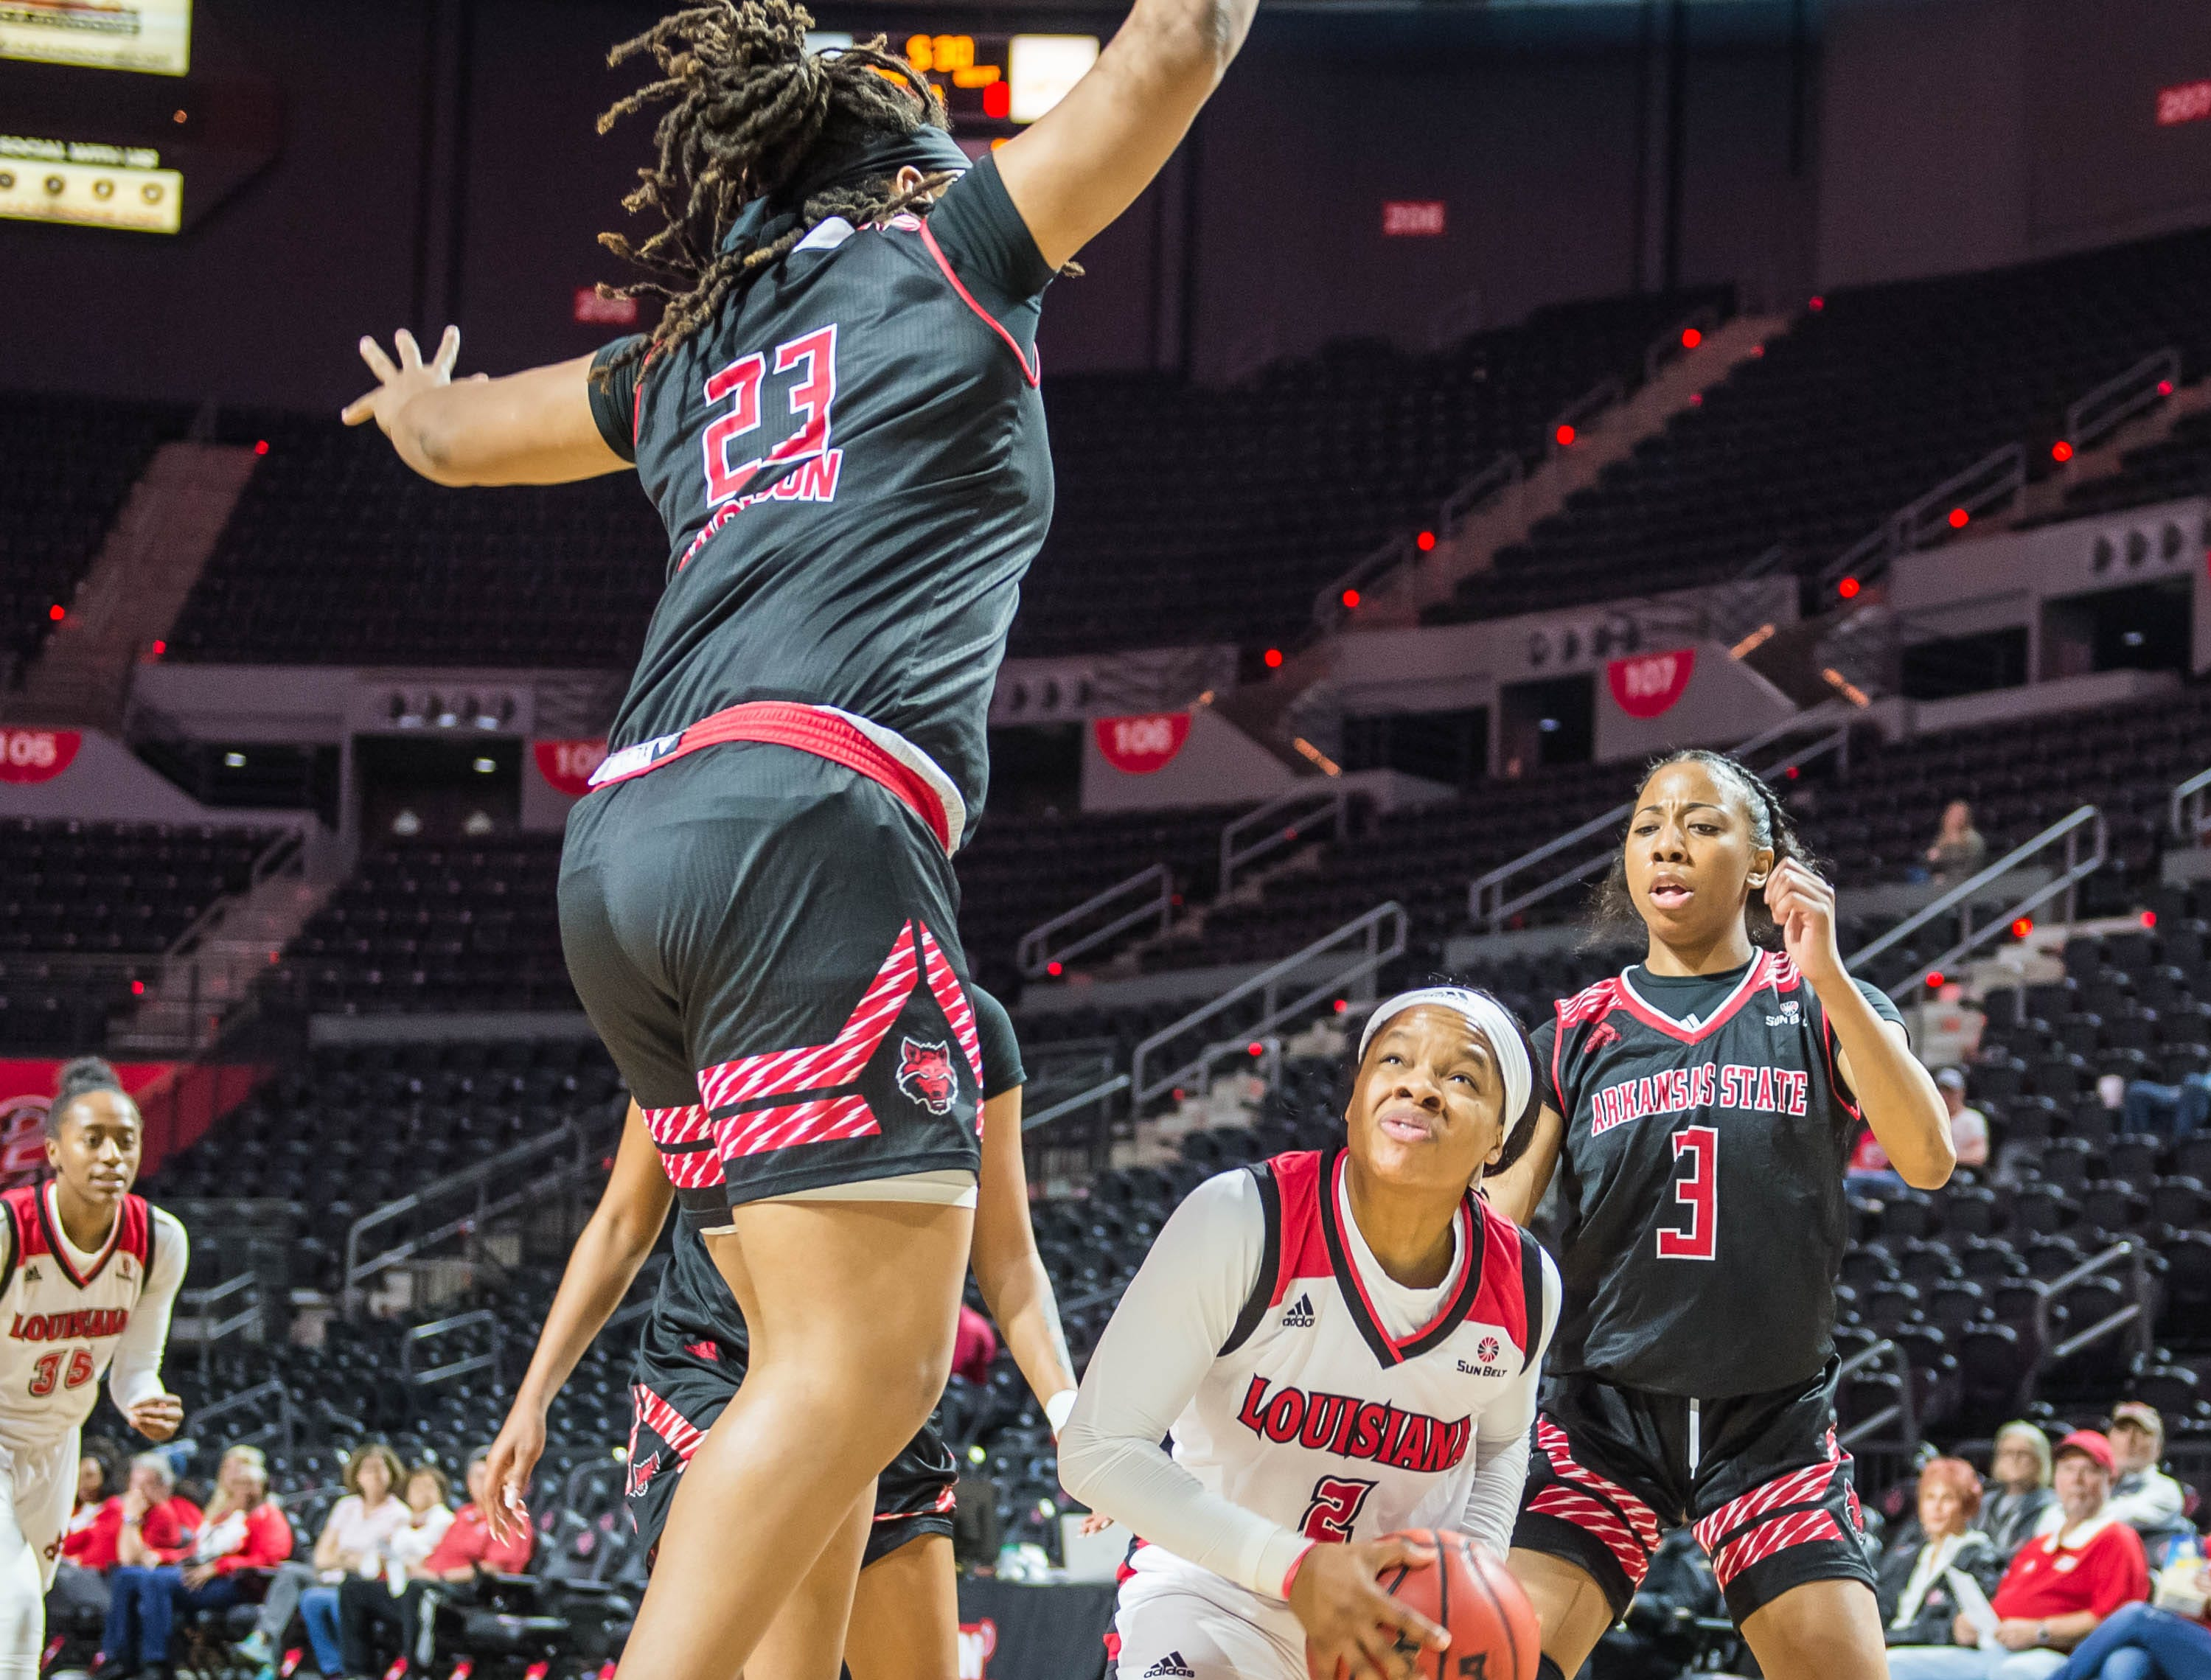 Cajuns guard Brandi Williams (2) with the pump fake to draw Wolves forward Trinitee Jackson (23) up in the air as the Cajuns women's basketball team plays the Arkansas State Red Wolves at the Cajundome on Saturday, March 9, 2019.